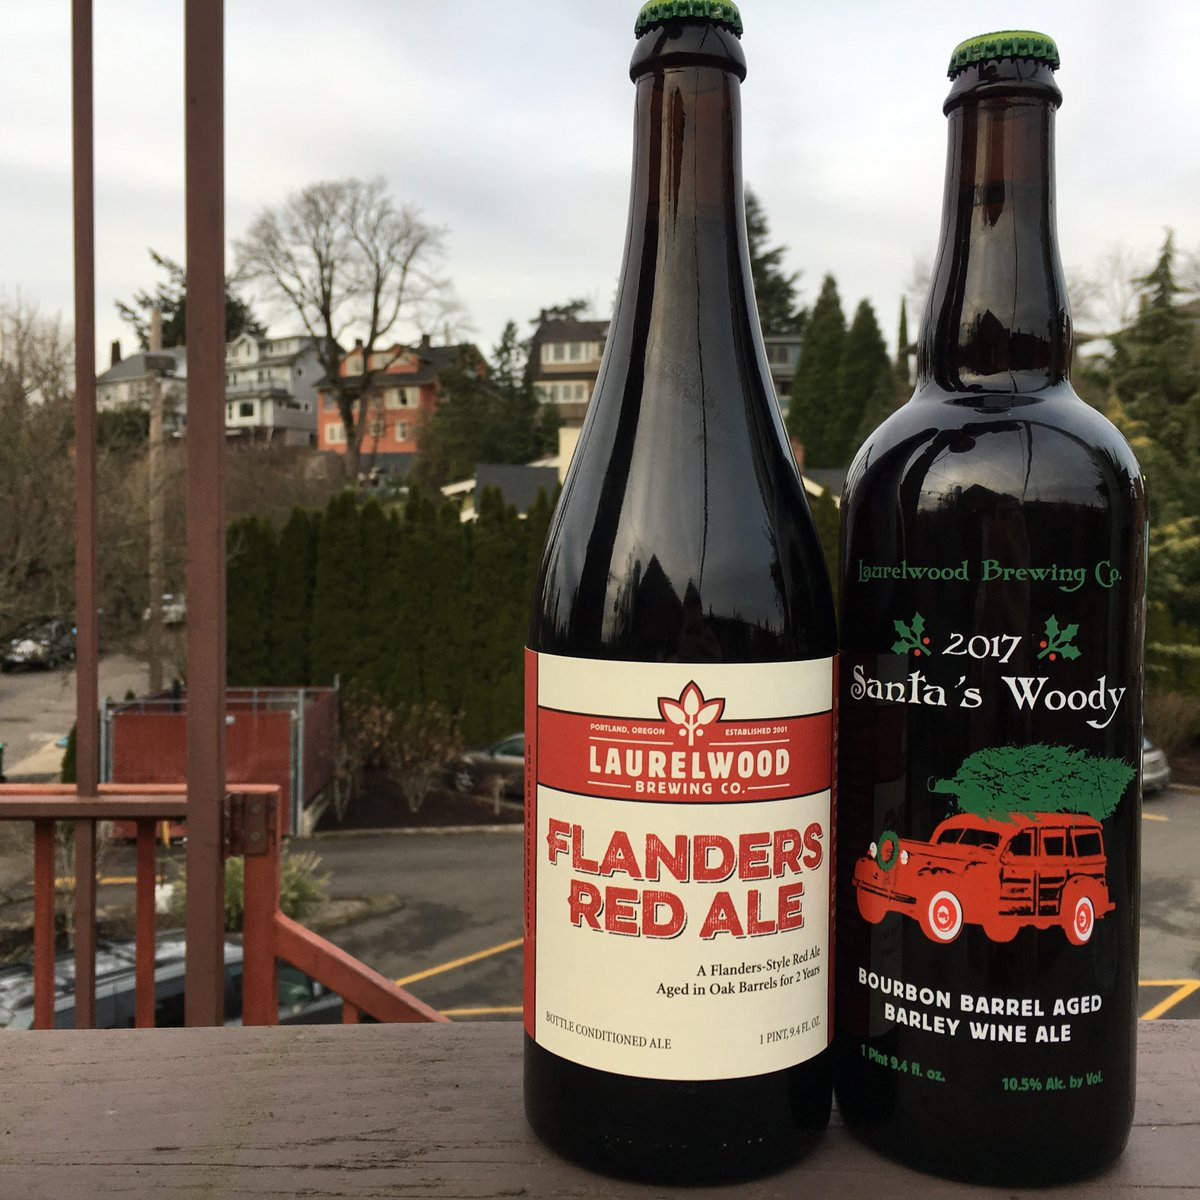 Laurelwood Brewing Releases Flanders Red Ale And 2017